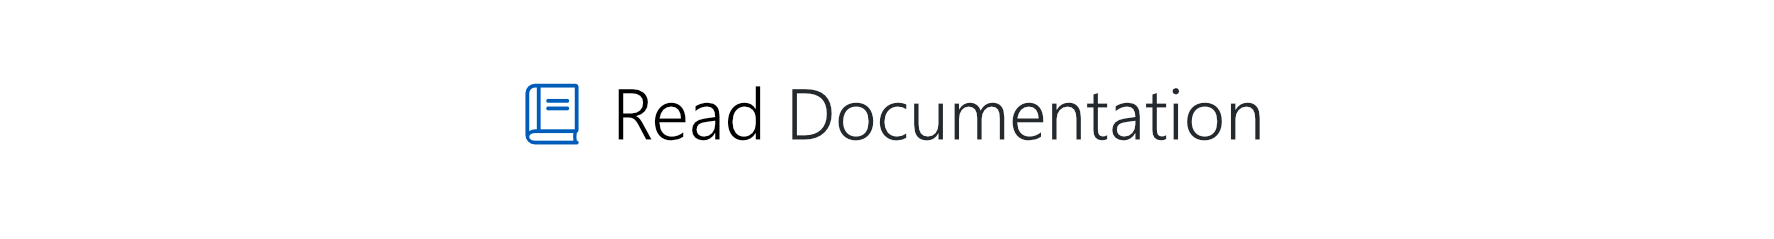 Read Documentation